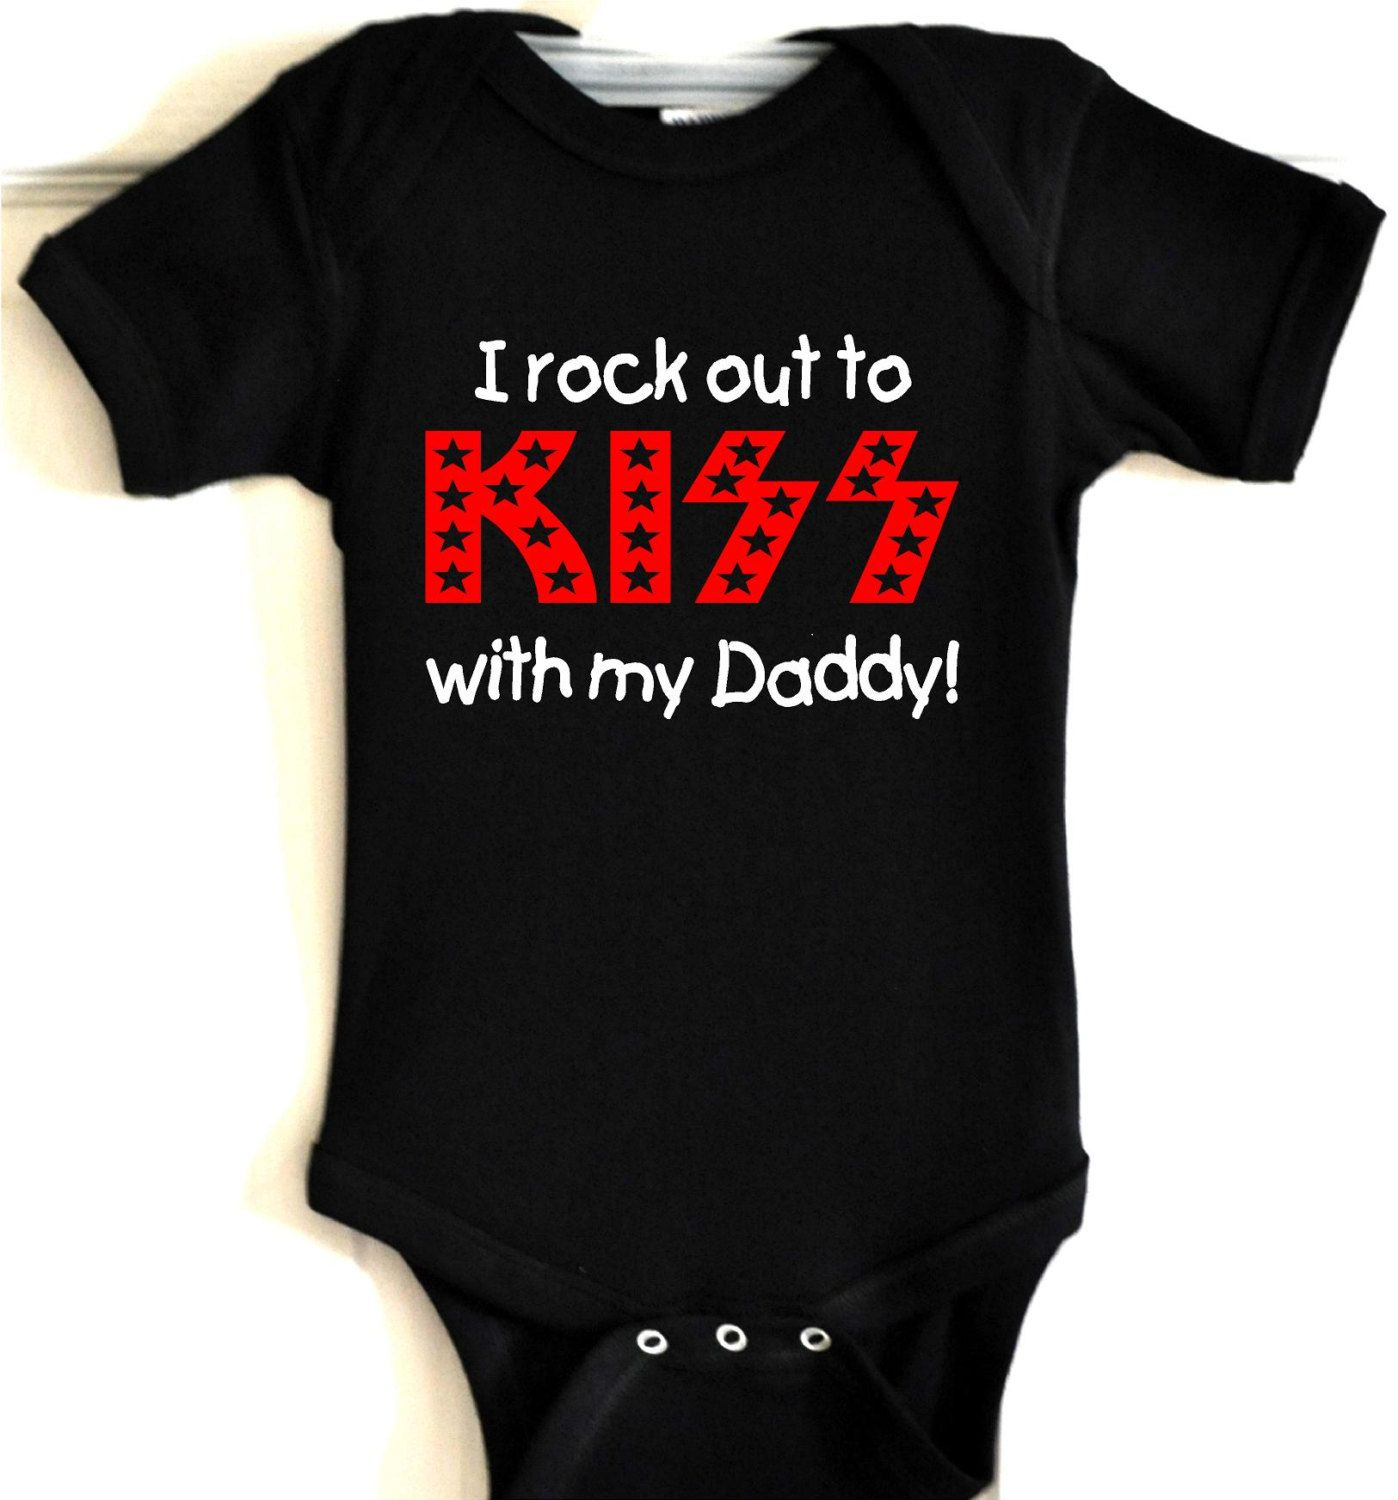 wRb i rock out to kiss with daddy mommy baby onesie t shirt bodysuit